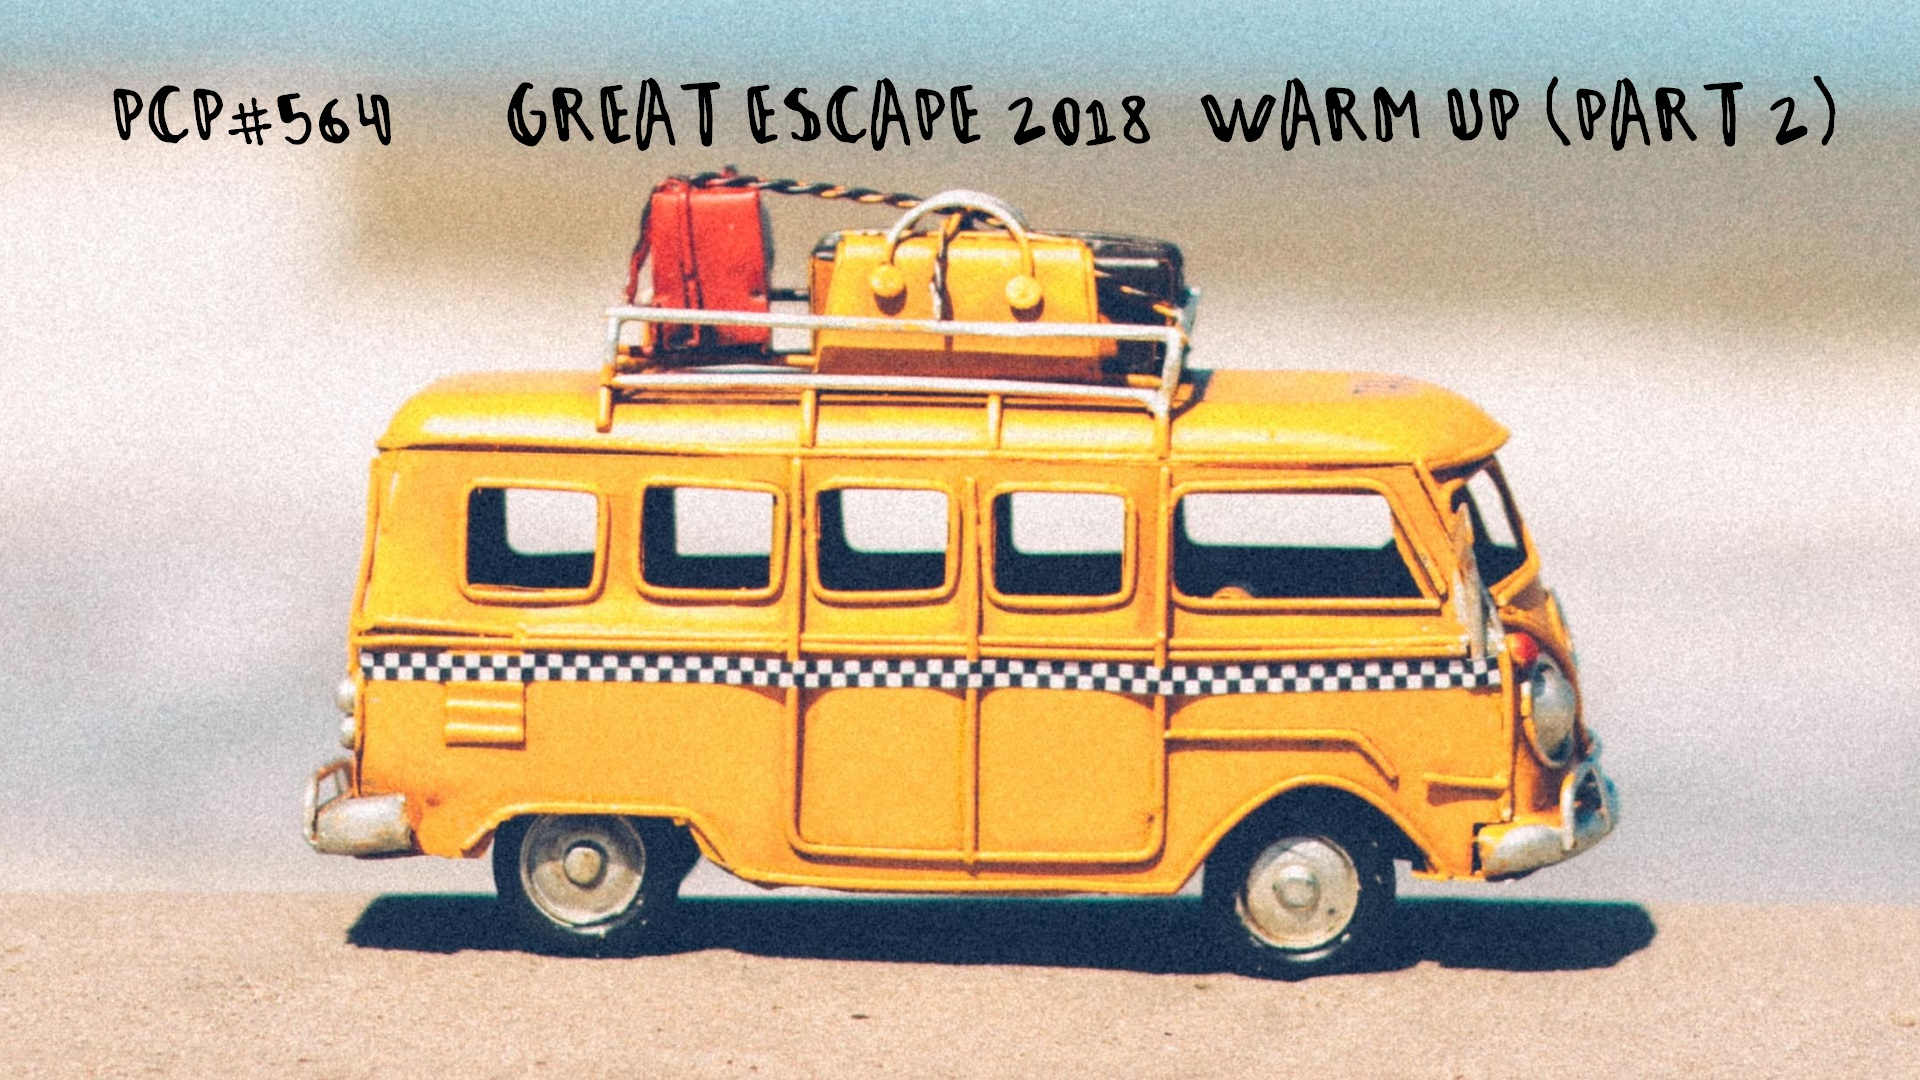 PCP#563... Great Escape 2018 - Warm Up Part 2....